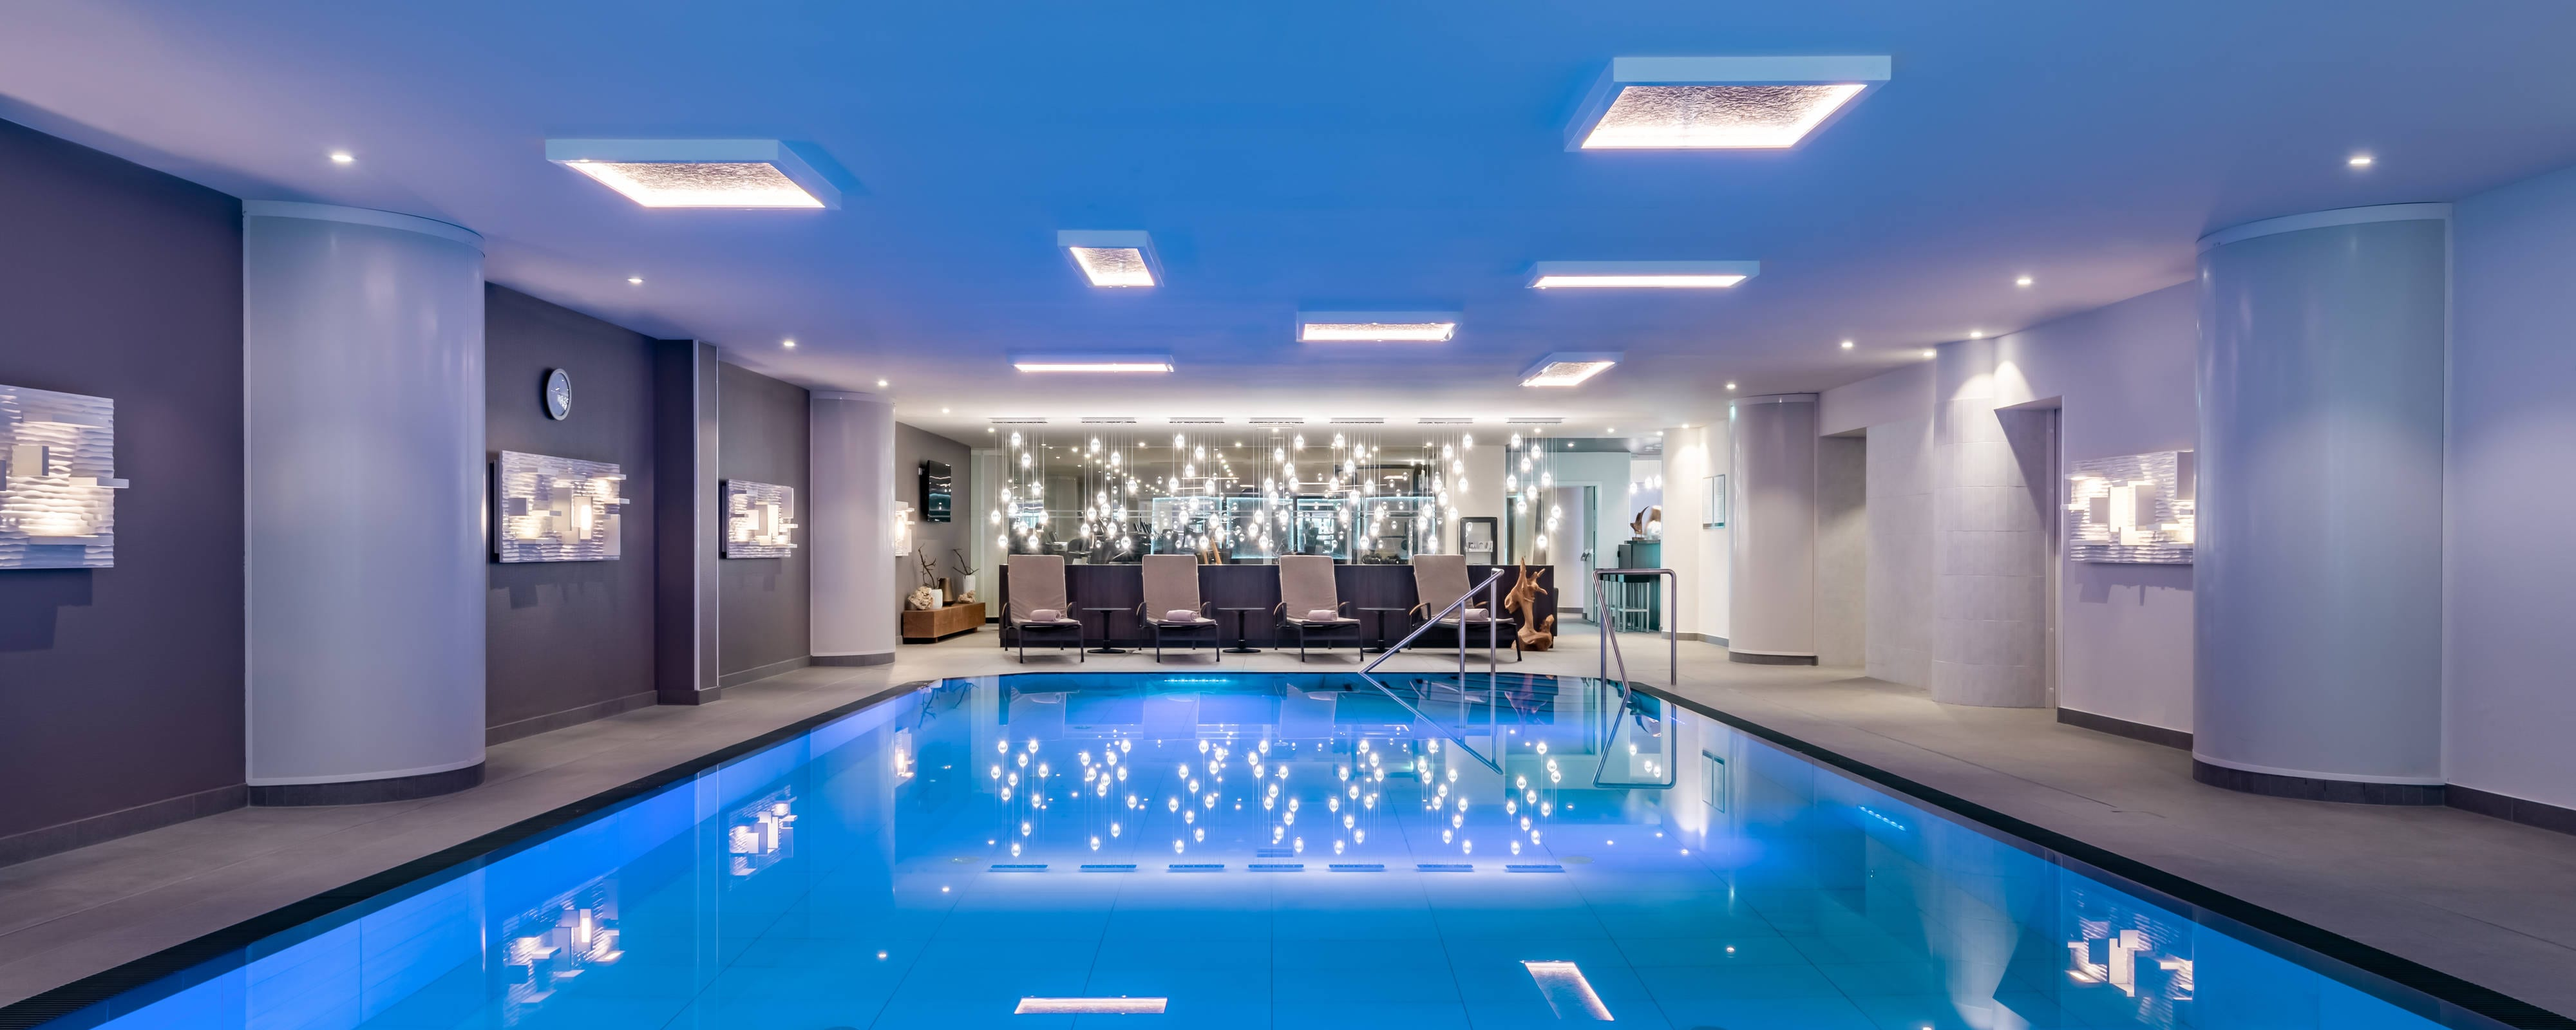 Hotel with indoor pool and gym in vienna austria vienna